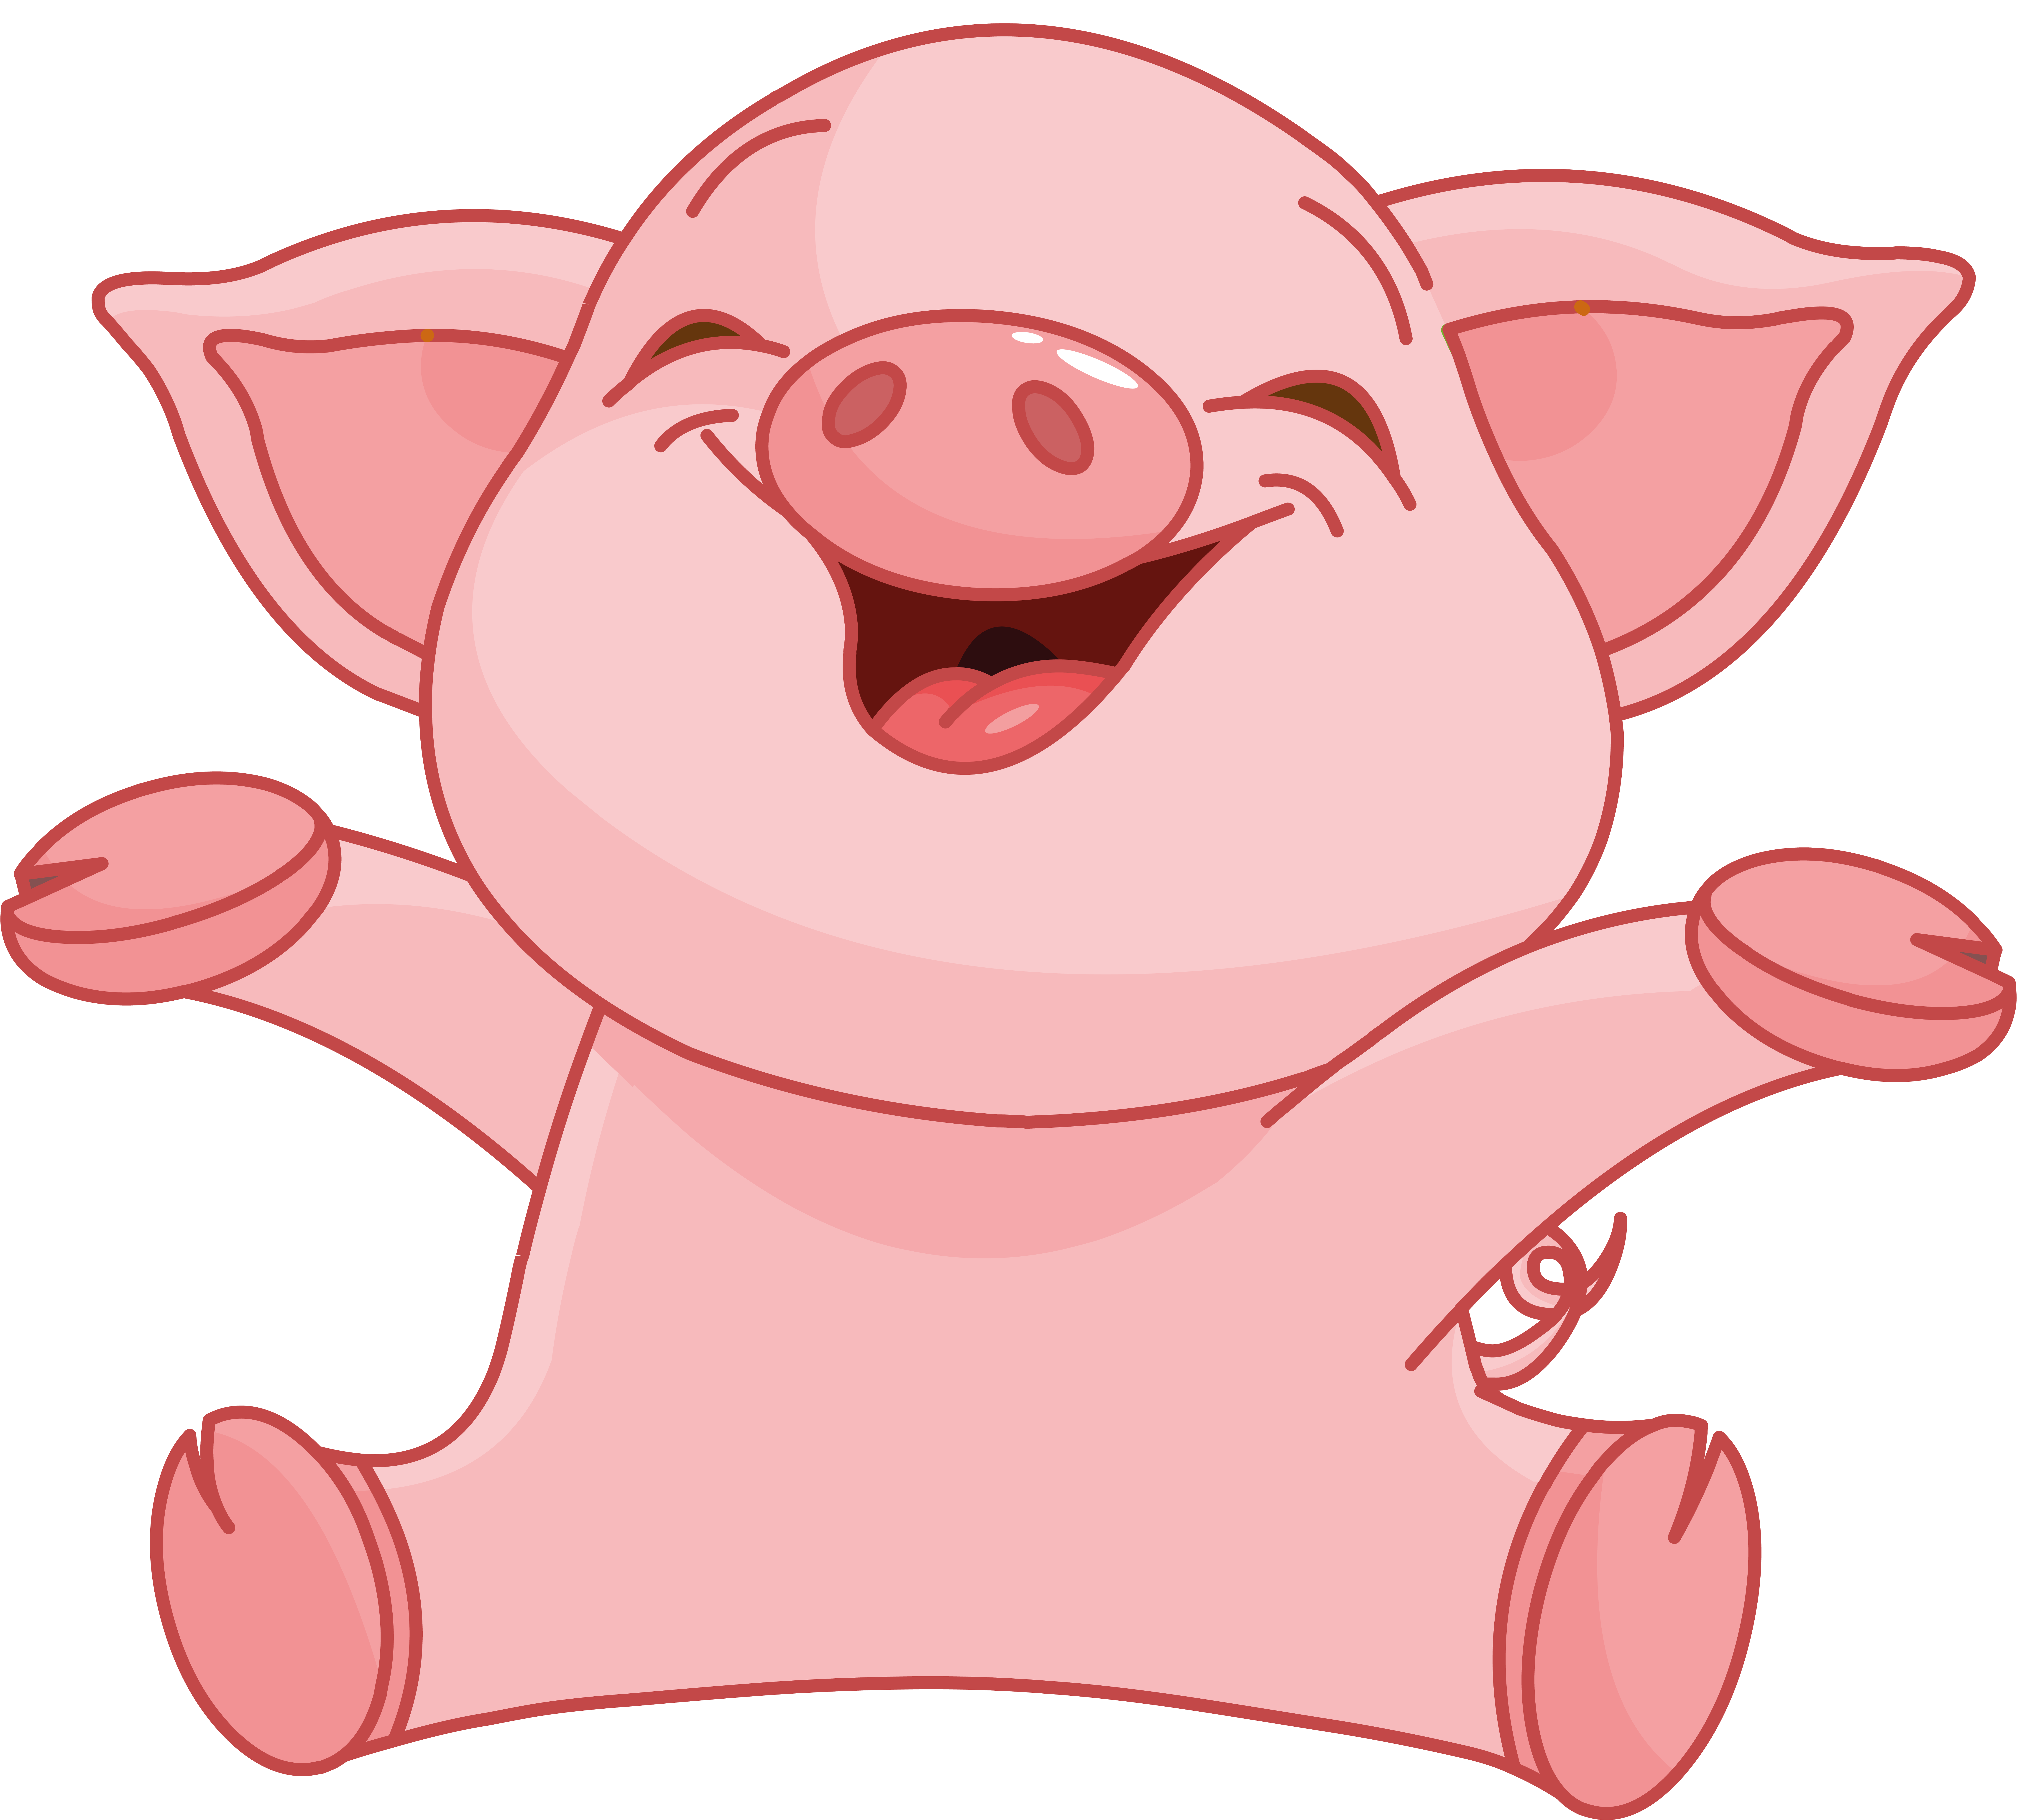 RoyaltyFree Domestic Cartoon Pig Free Clipart HQ Baby